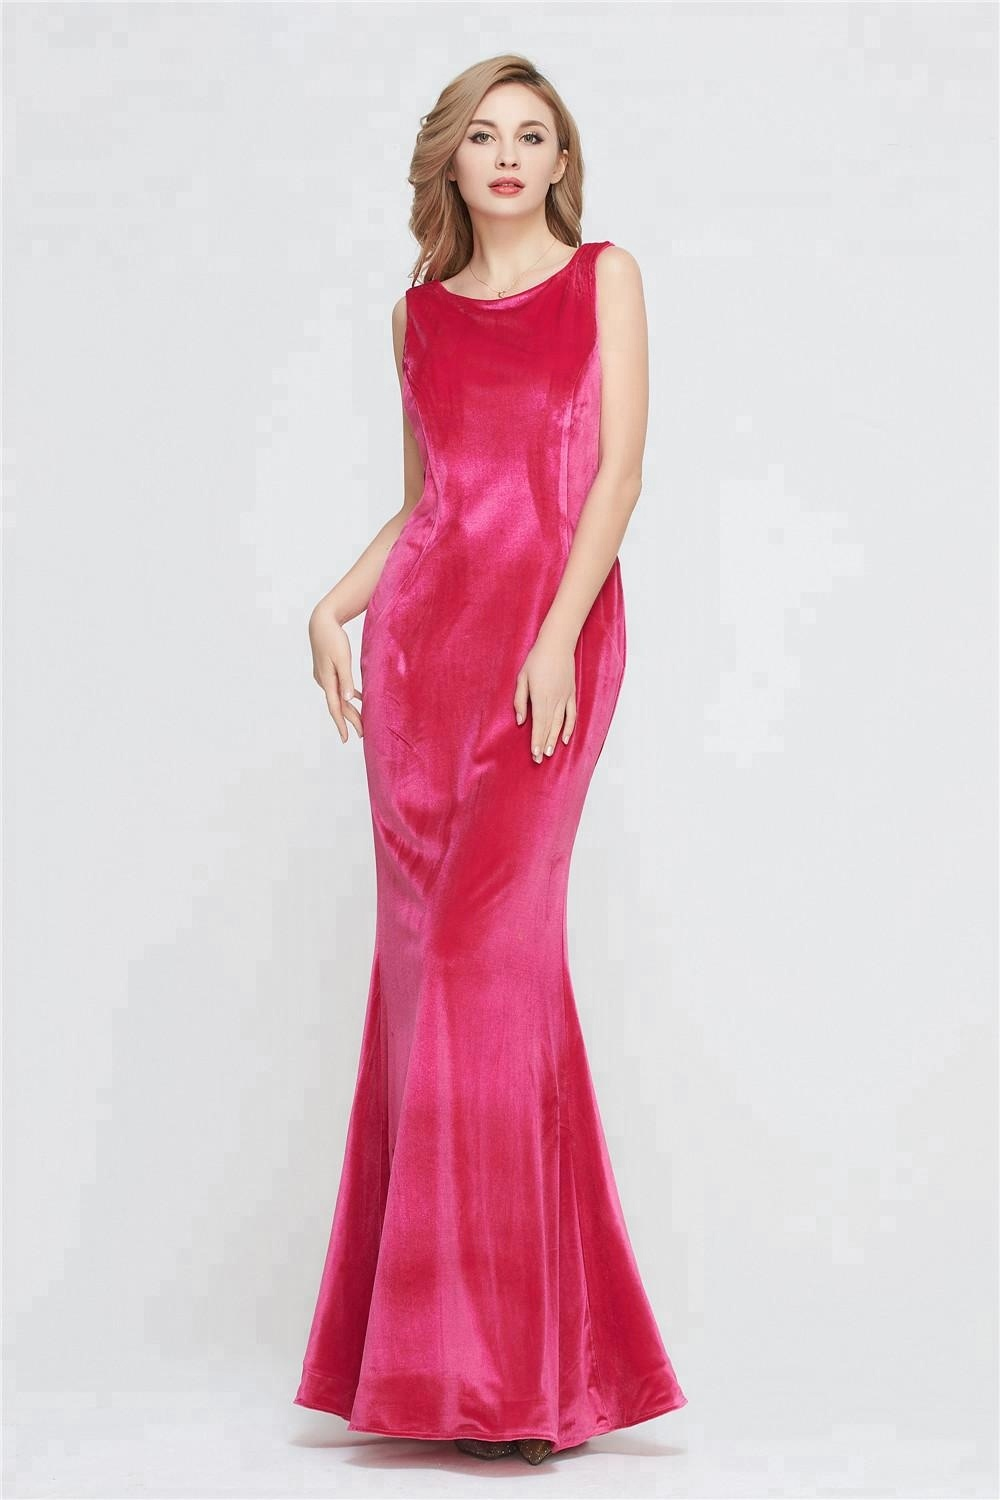 2021 New Stock Wholesale Celebrity Evening Formal Party gowns sexy Prom Gown Velvet Pink Prom Dress